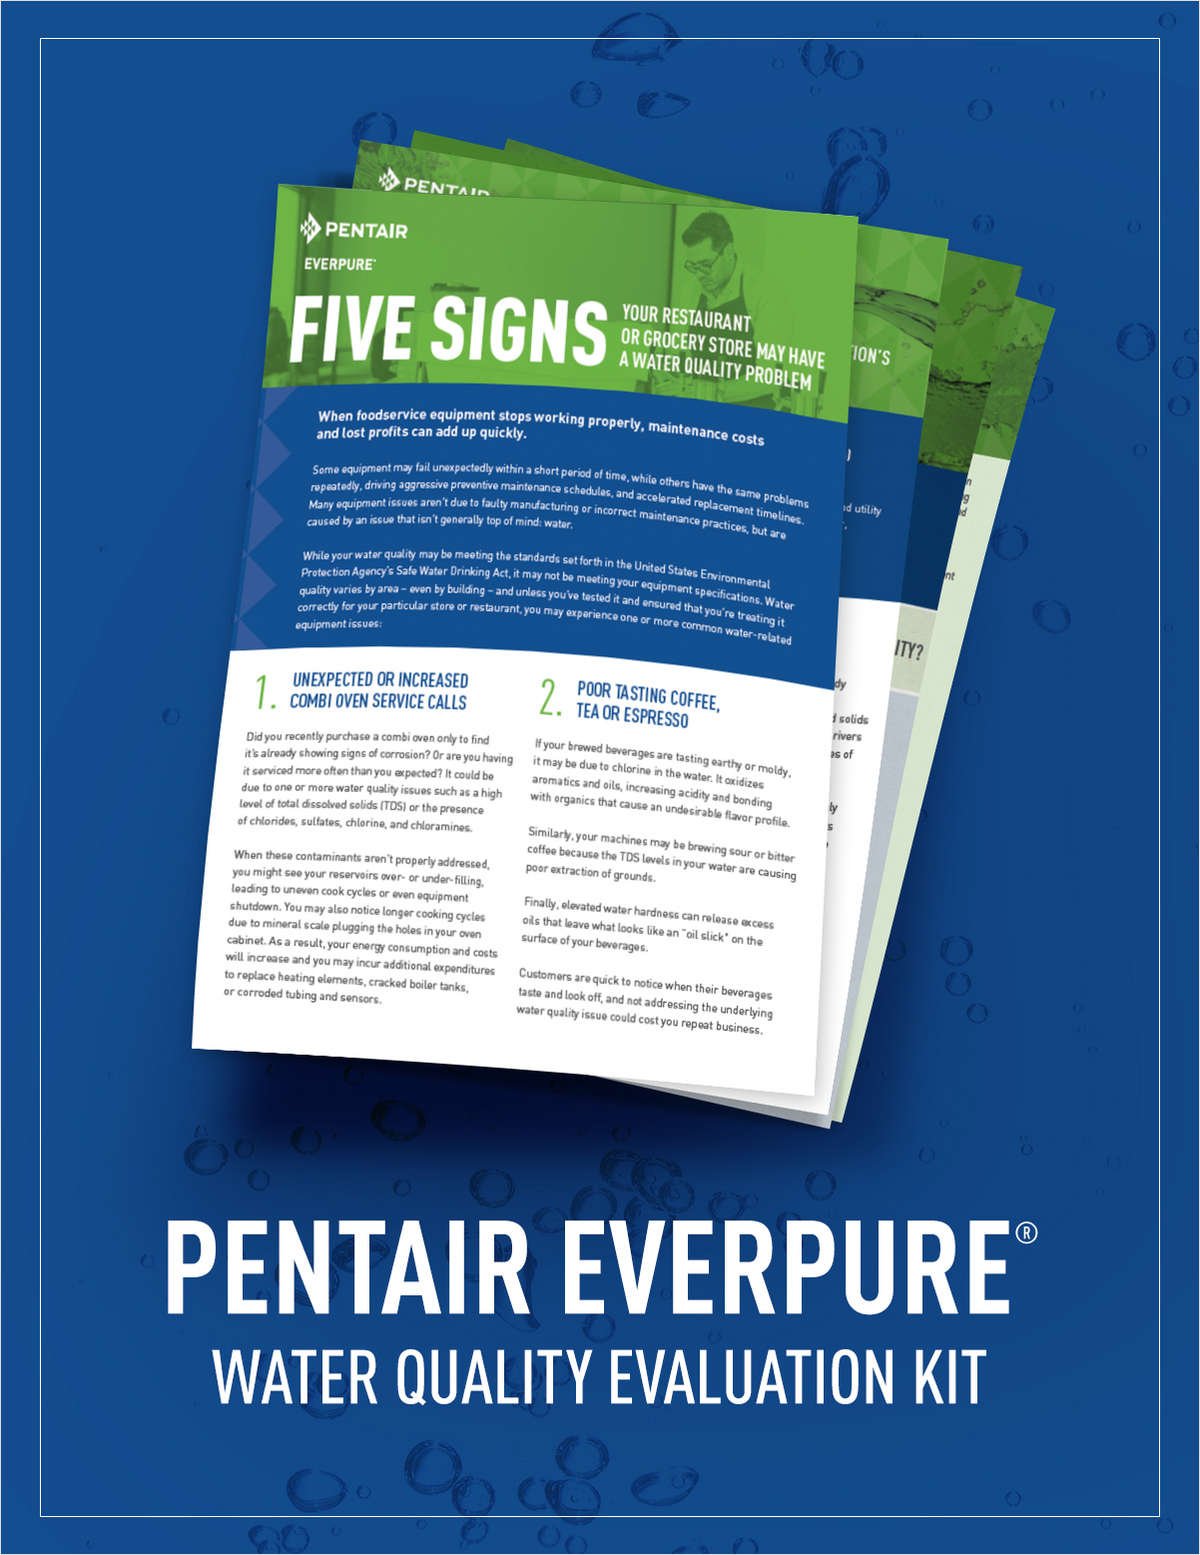 Pentair everpure water quality evaluation kit includes for Pentair everpure